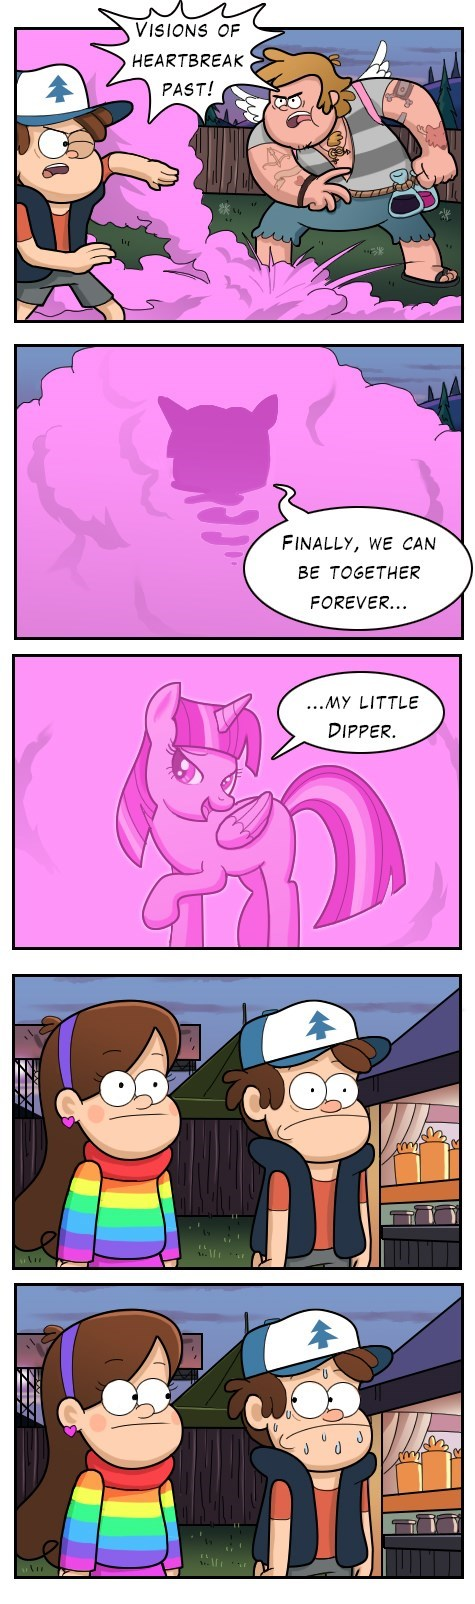 brony comics gravity falls Heartbreaking Tearjerker - 8393337856